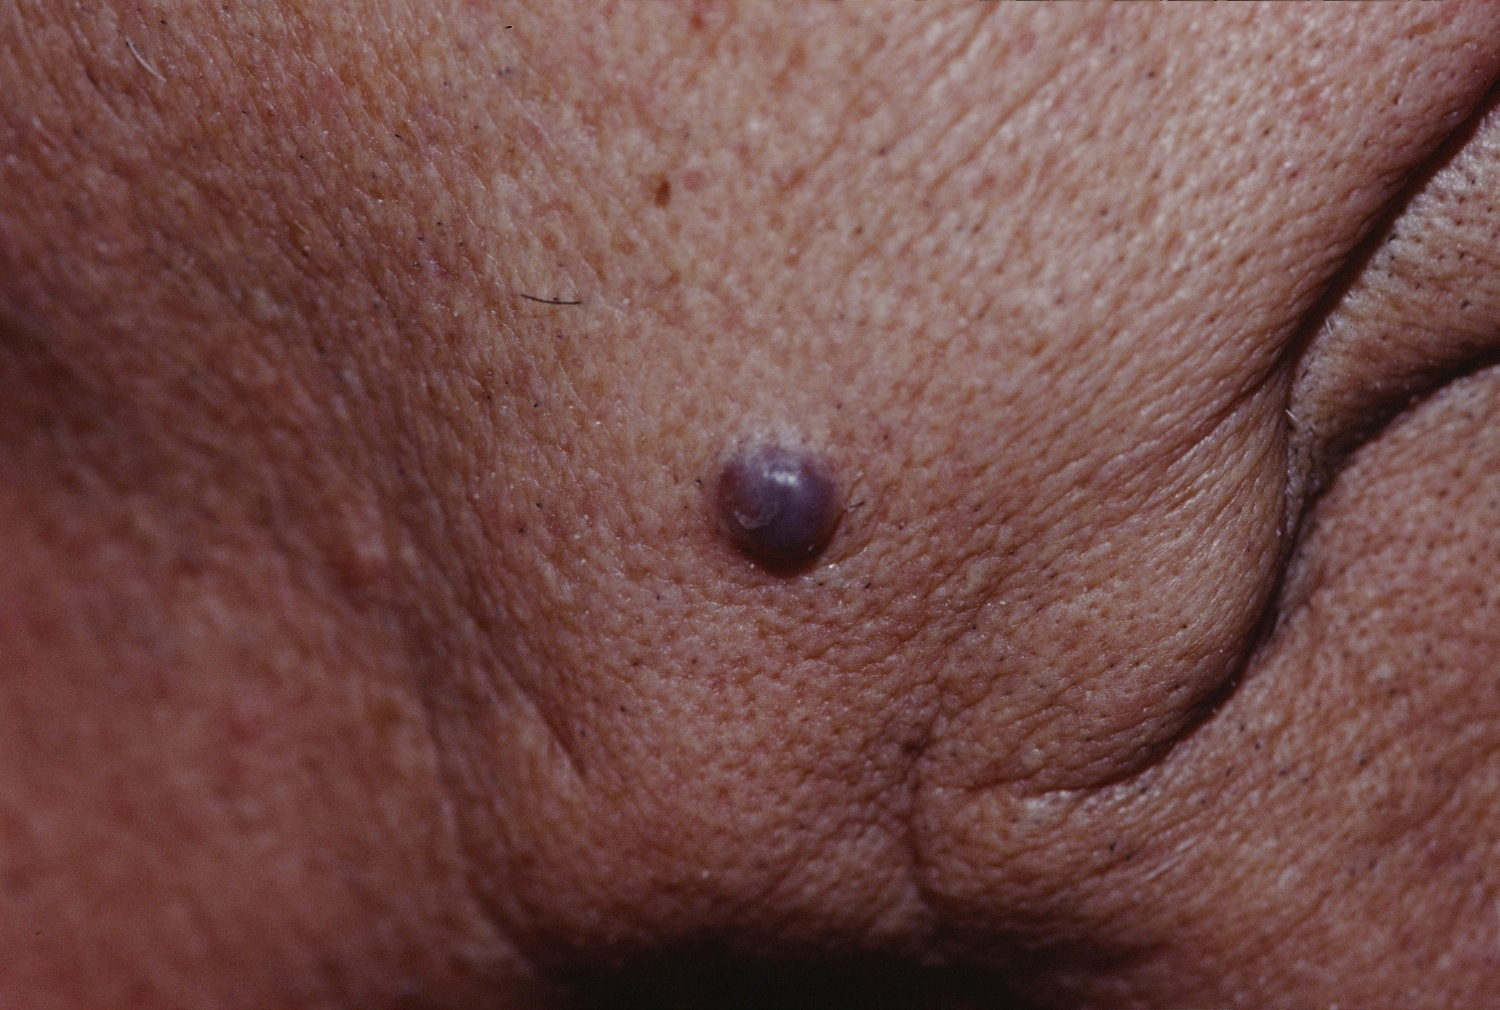 Cystic basal cell carcinoma